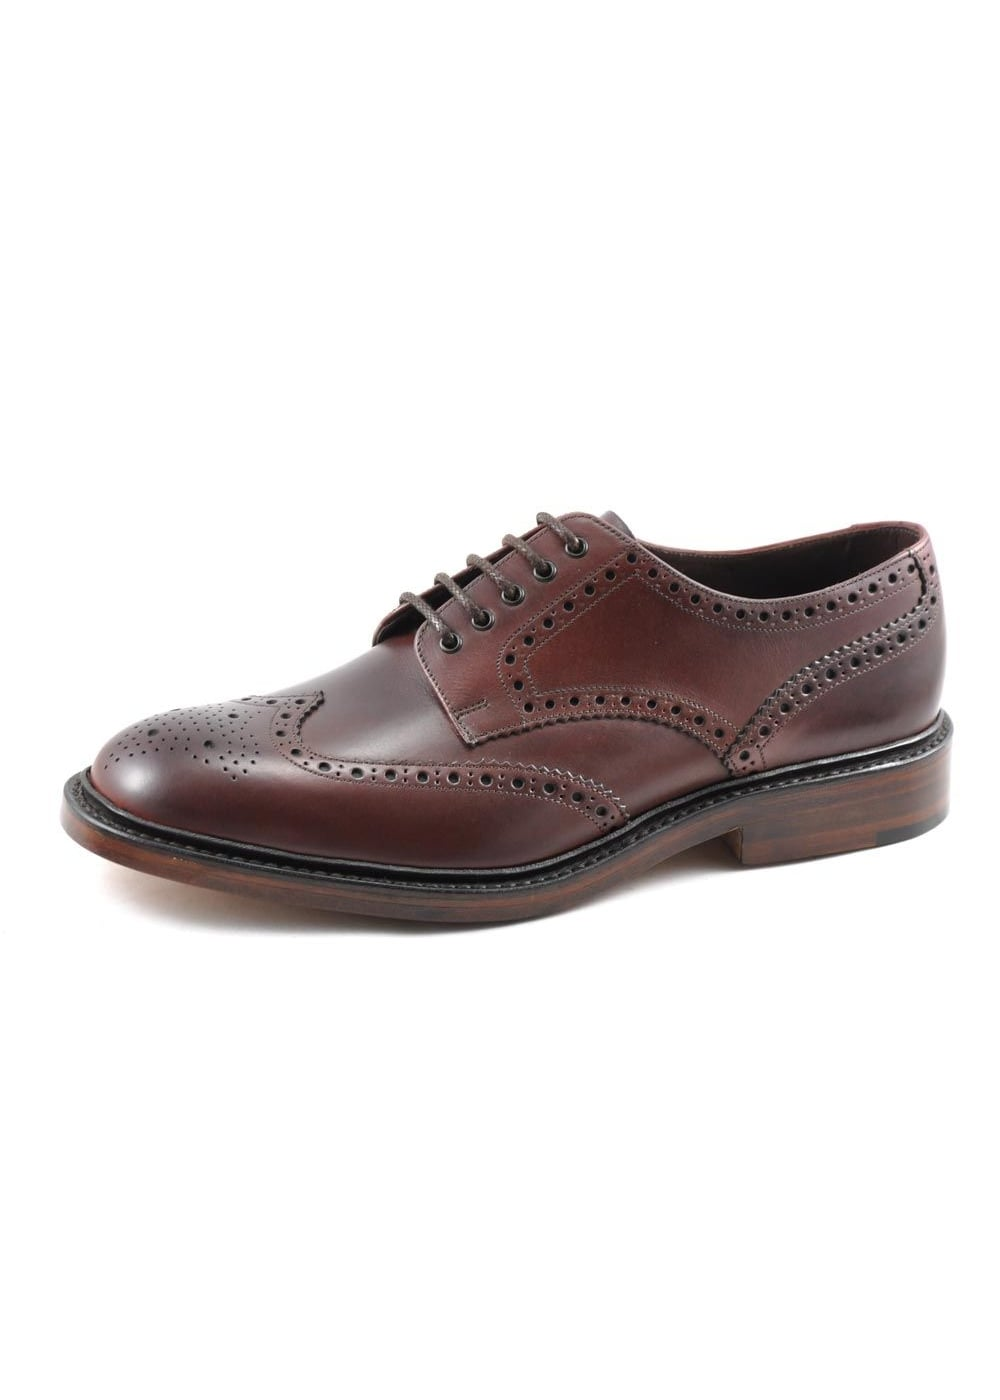 Loake Chester Shoes  Large Image